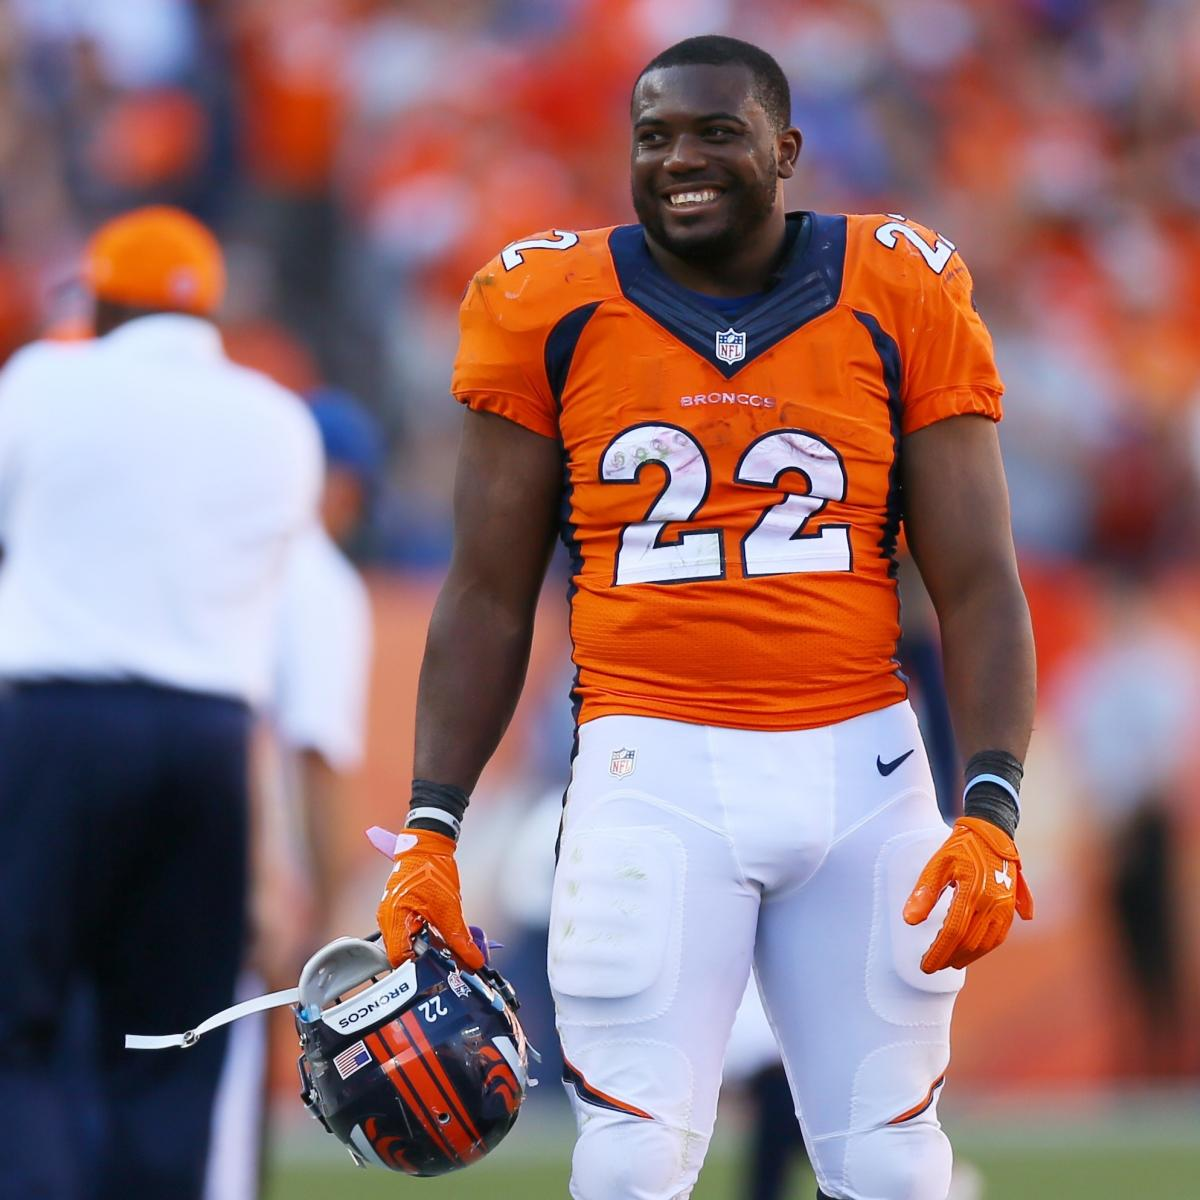 C.J. Anderson Injury: Updates On Broncos Star's Recovery